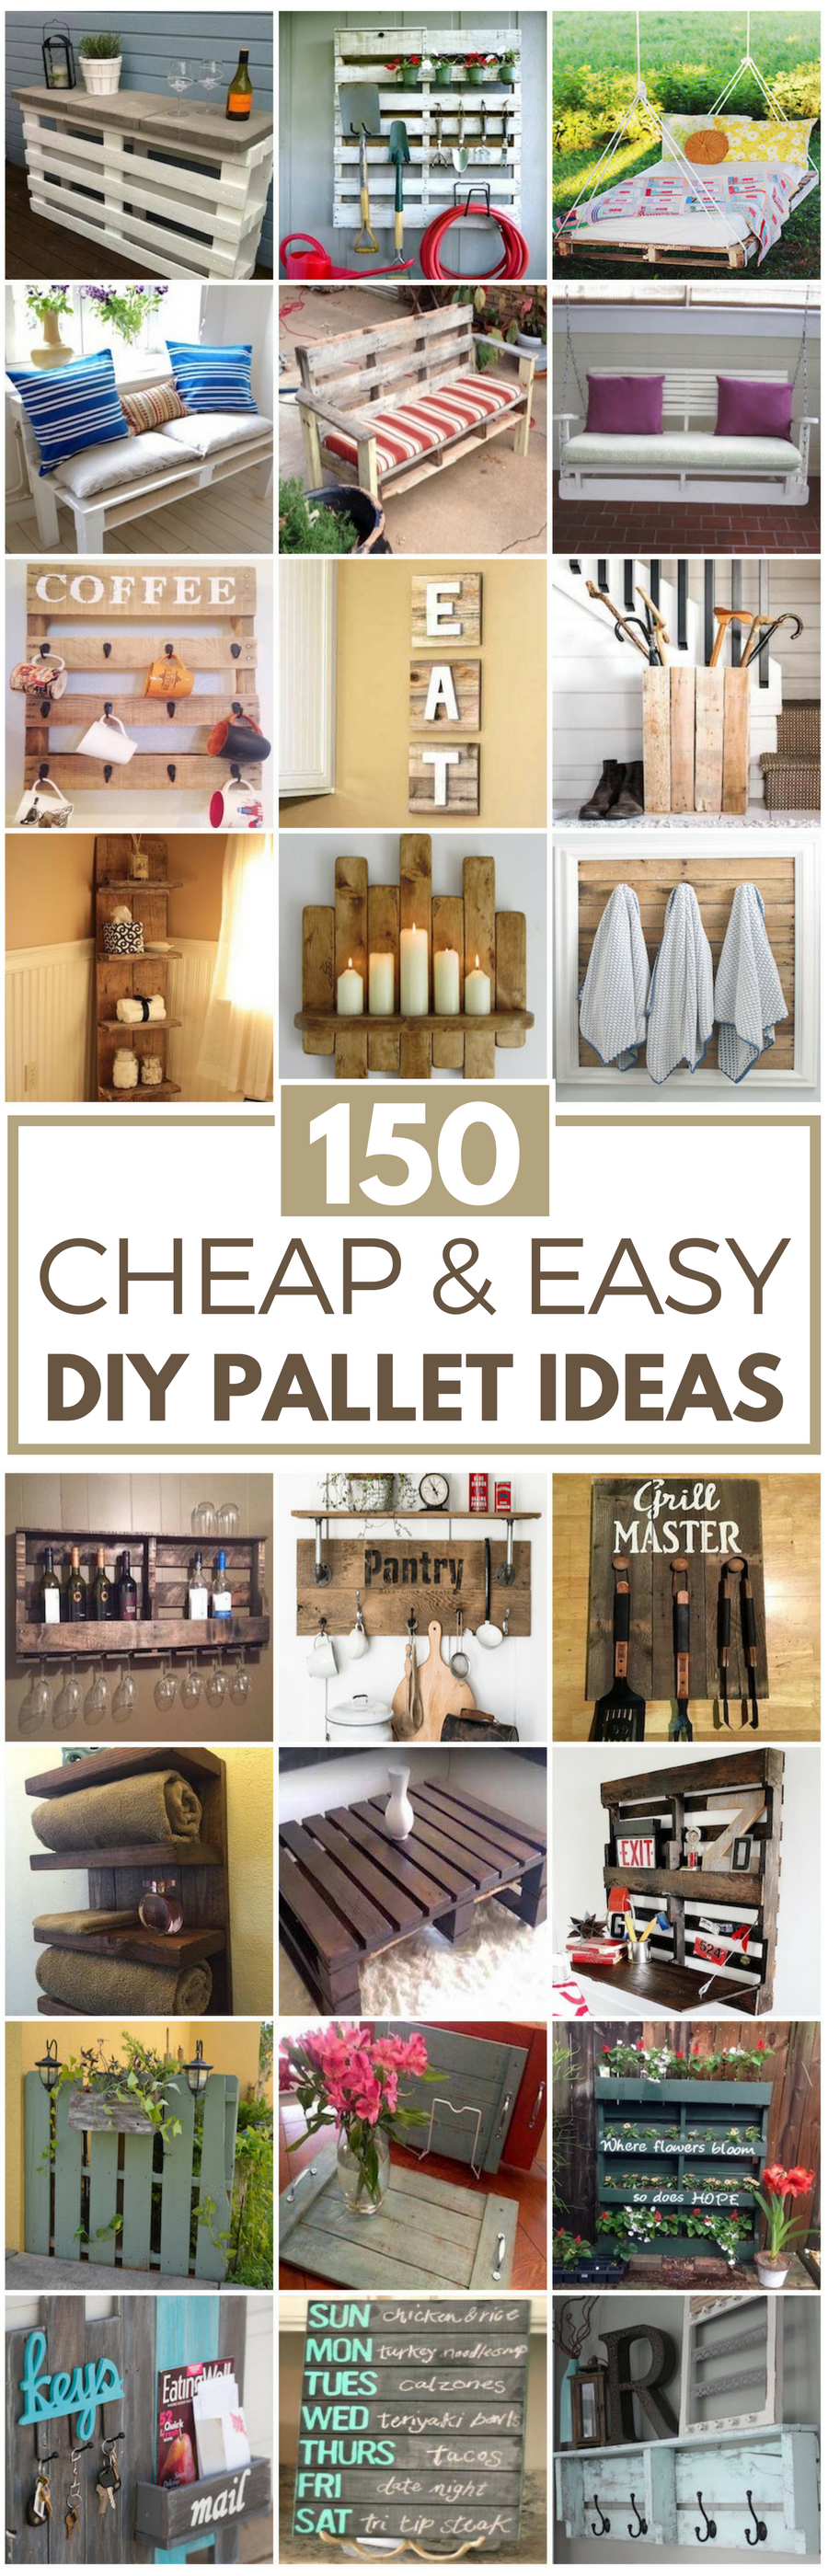 150 Cheap Easy Pallet Projects Prudent Penny Pincher